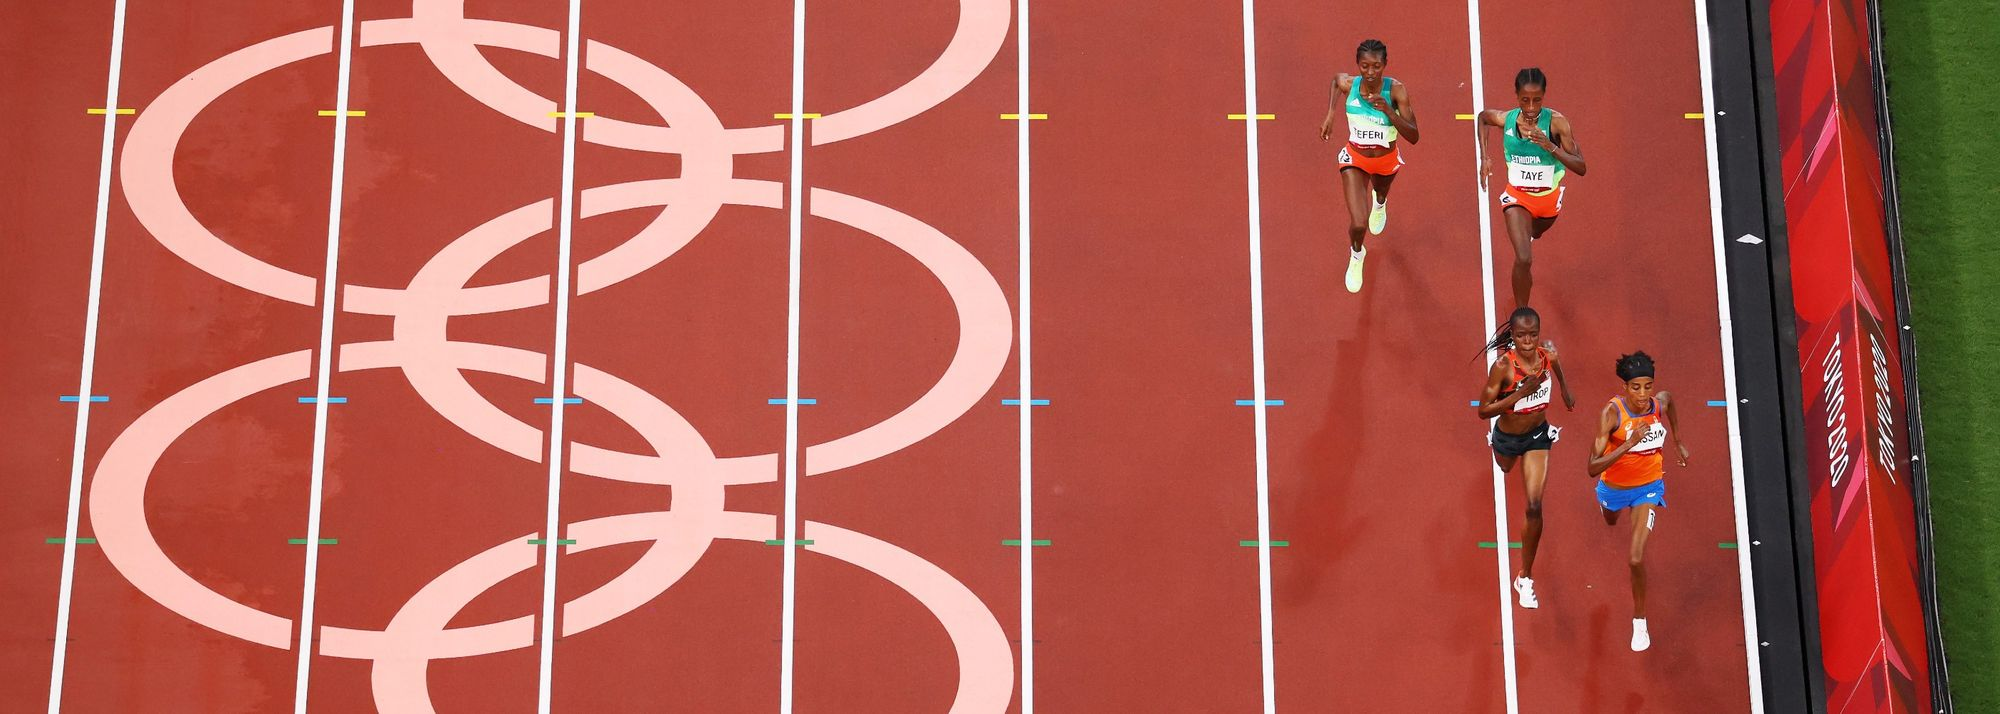 Monday has never looked so good! Five finals highlight day four (2) of the athletics at the Tokyo 2020 Olympic Games.